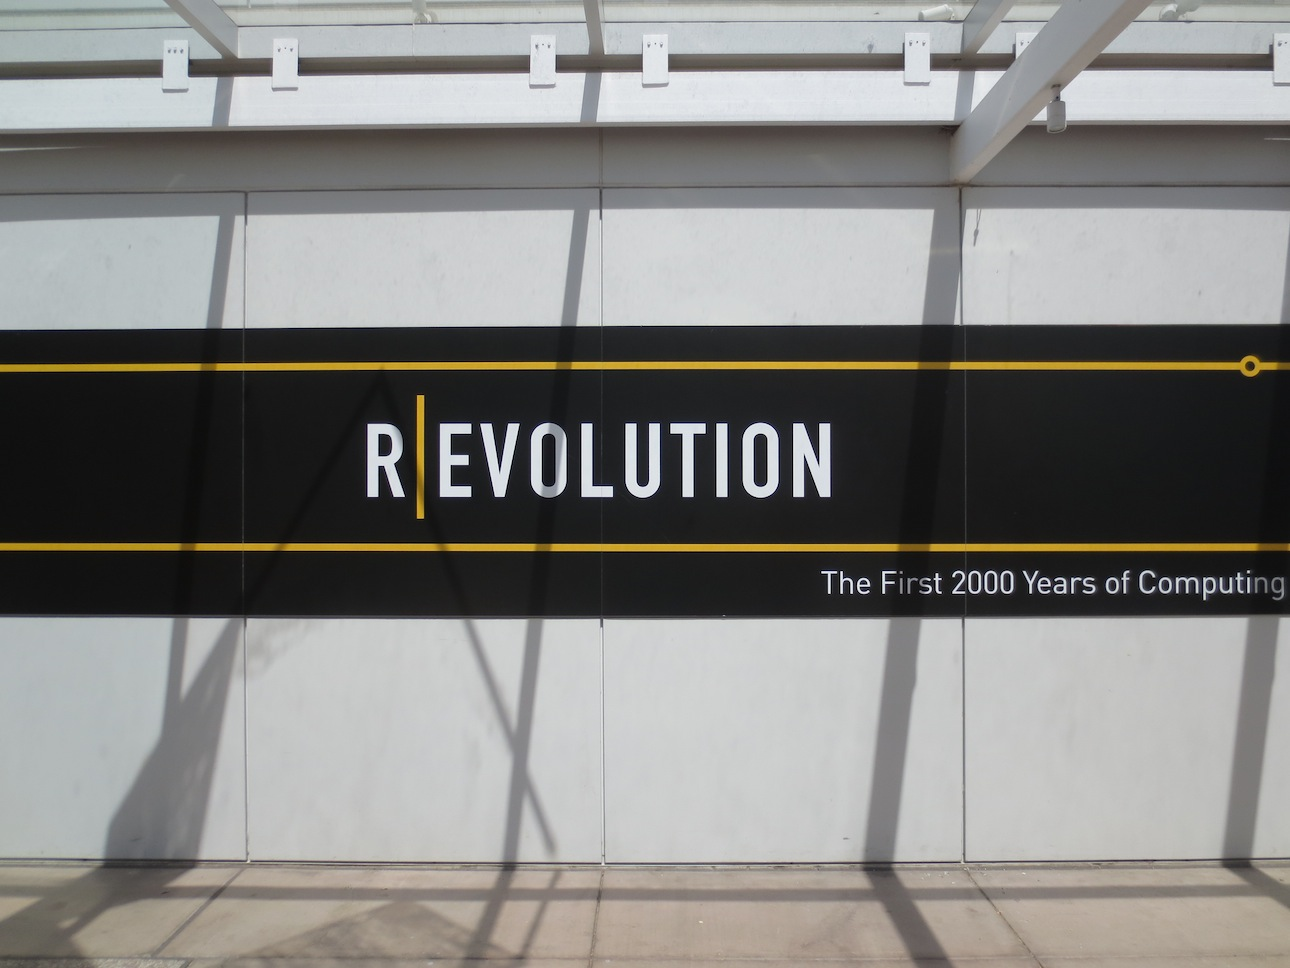 Revolution. The current theme for the Computer History Museum.